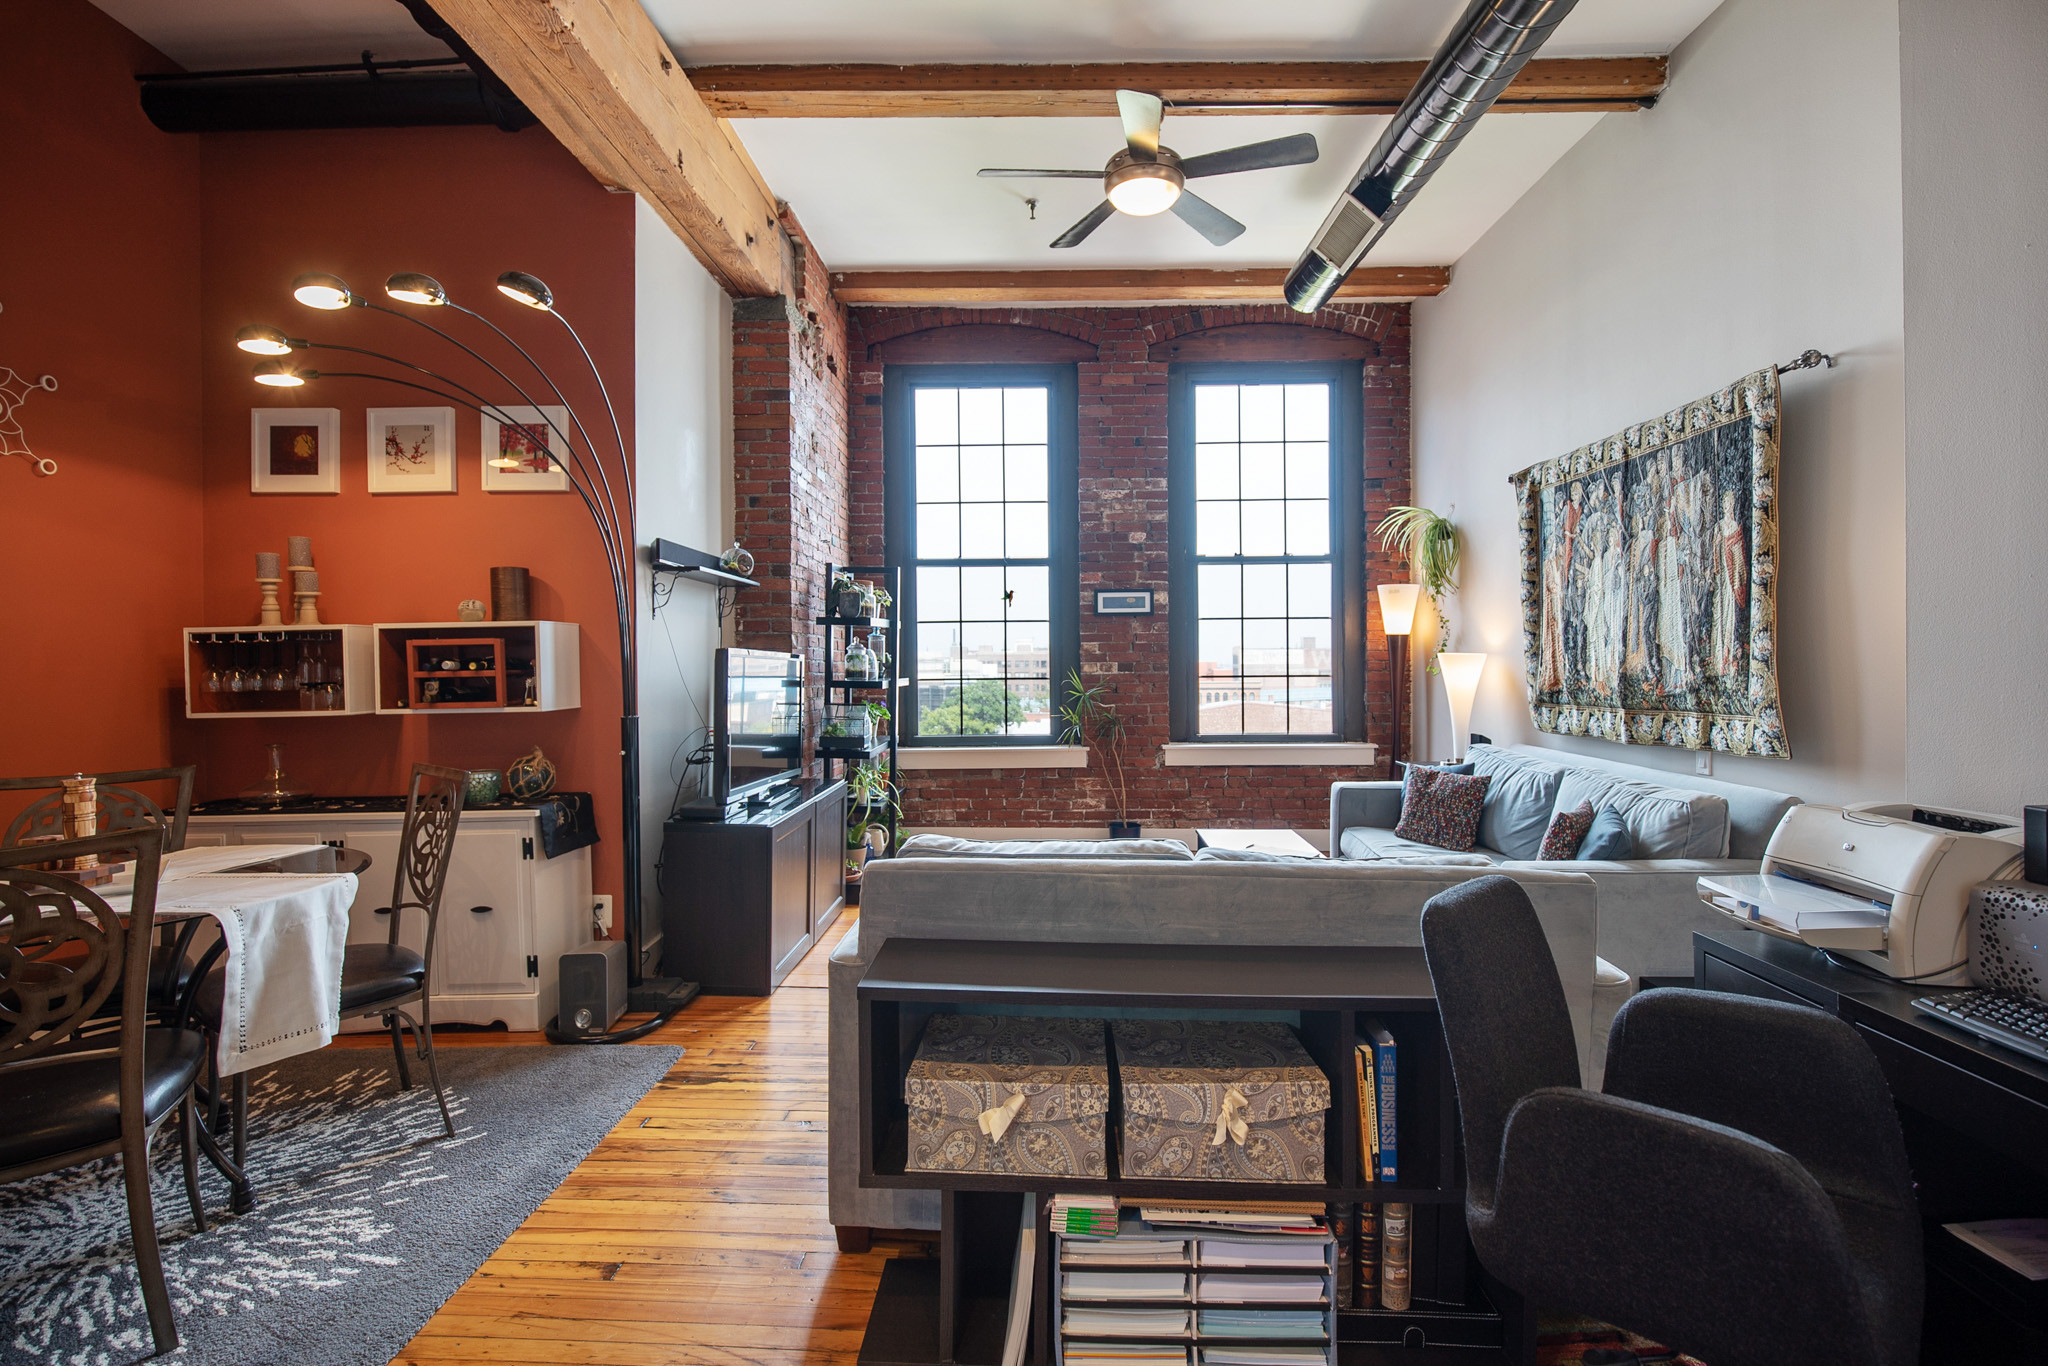 hardwood floor cost per square foot calculator of philadelphia homes neighborhoods architecture and real estate with regard to charming home in old city hoopskirt factory wants 295k